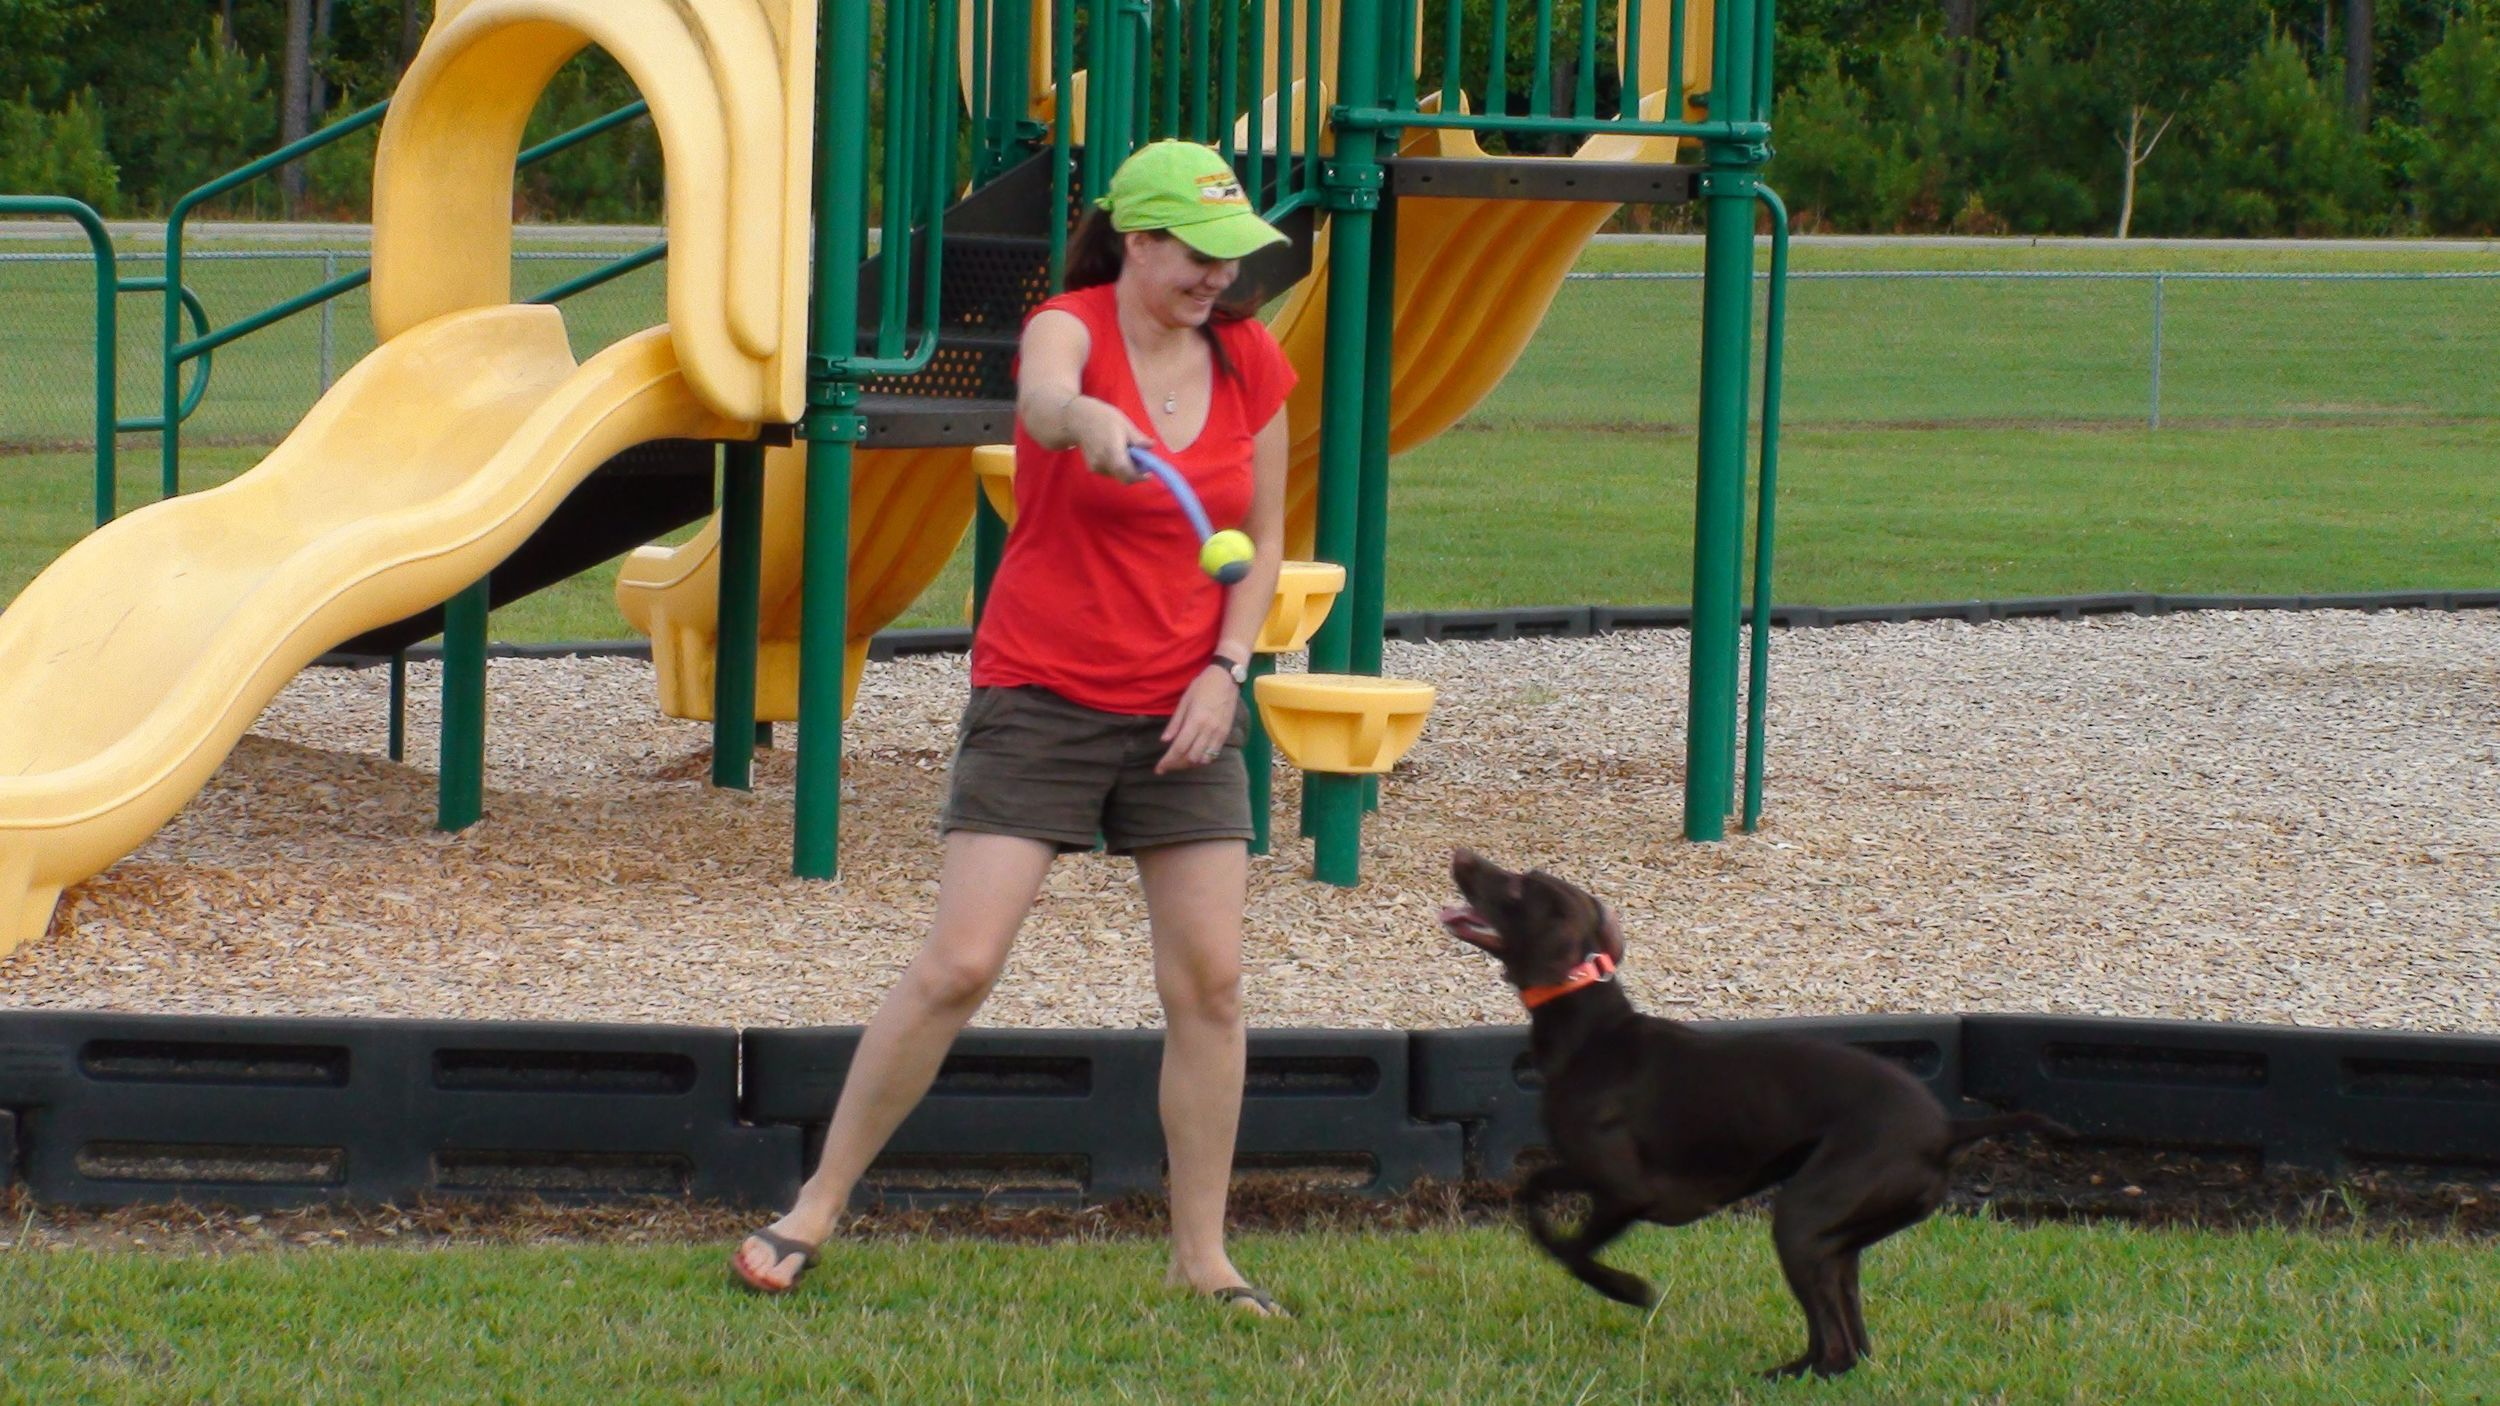 Keeping it fun and interesting for both dog and trainer is key . Here, Chatter is practicing fetch as well as learning about obstacles and how to maneuver through and on them.